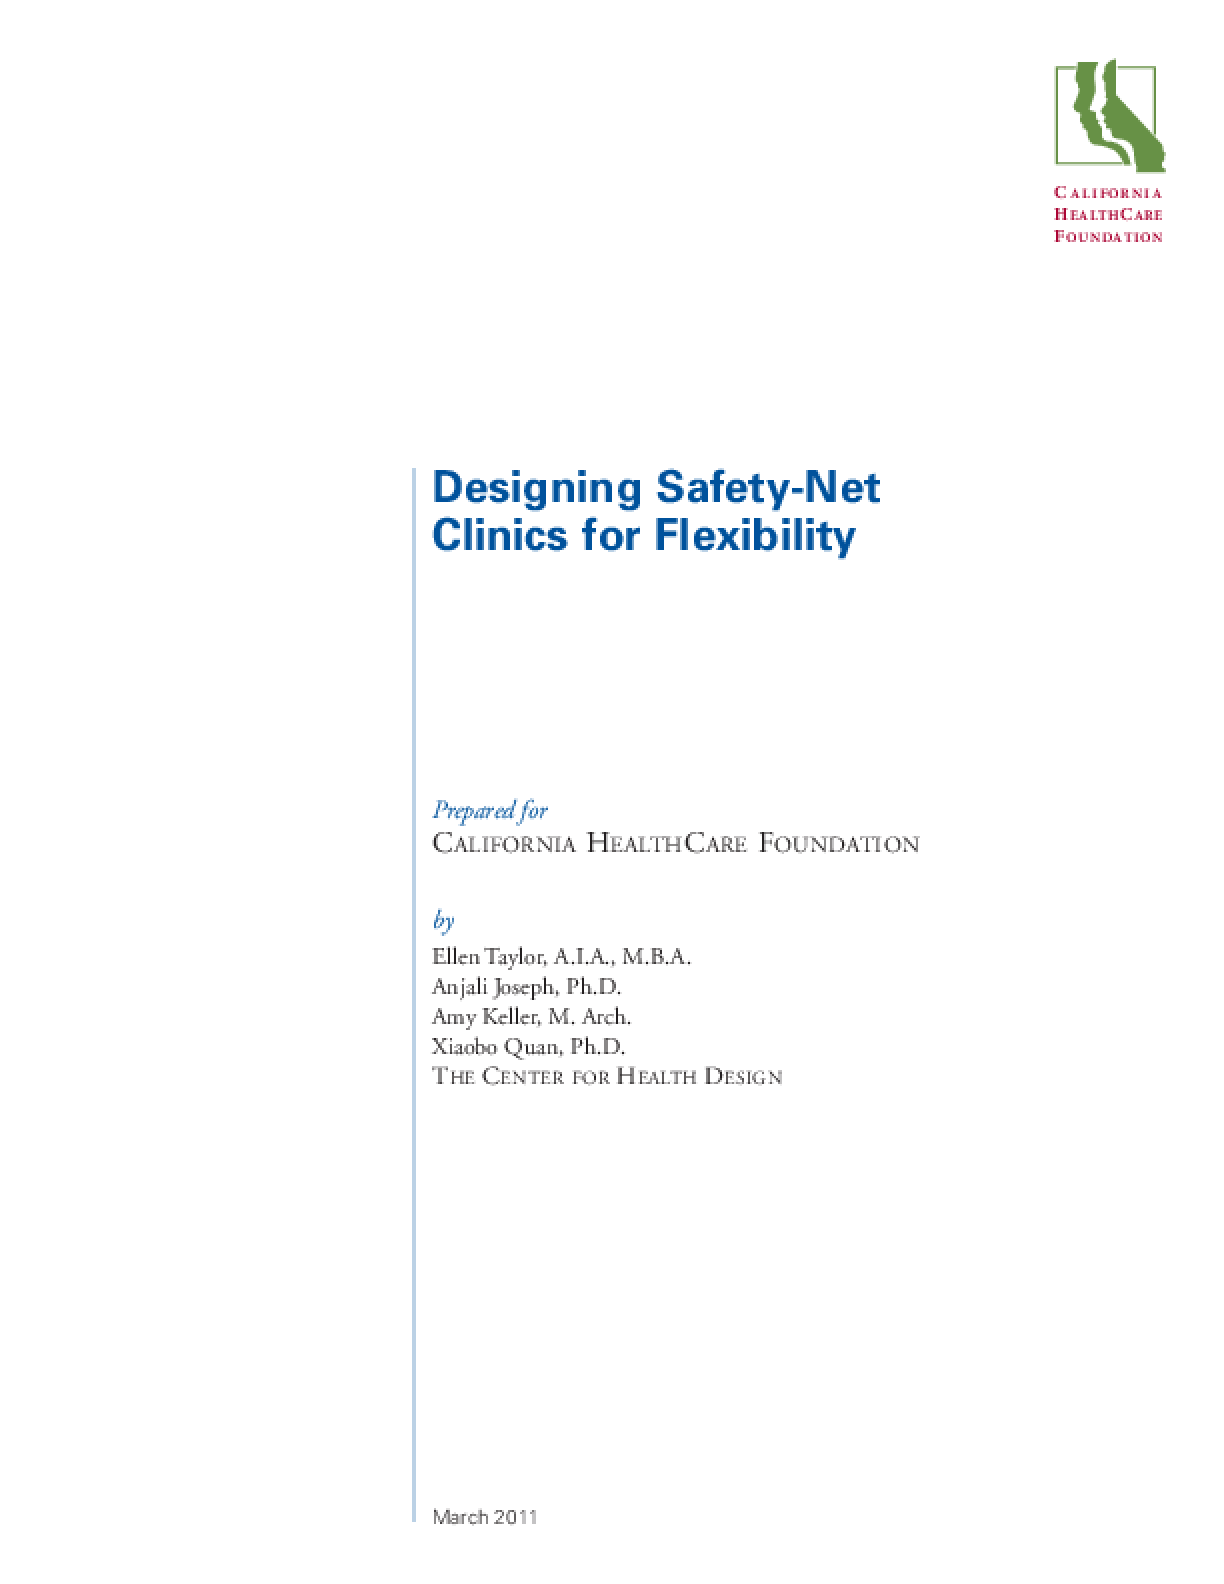 Designing Safety-Net Clinics for Flexibility